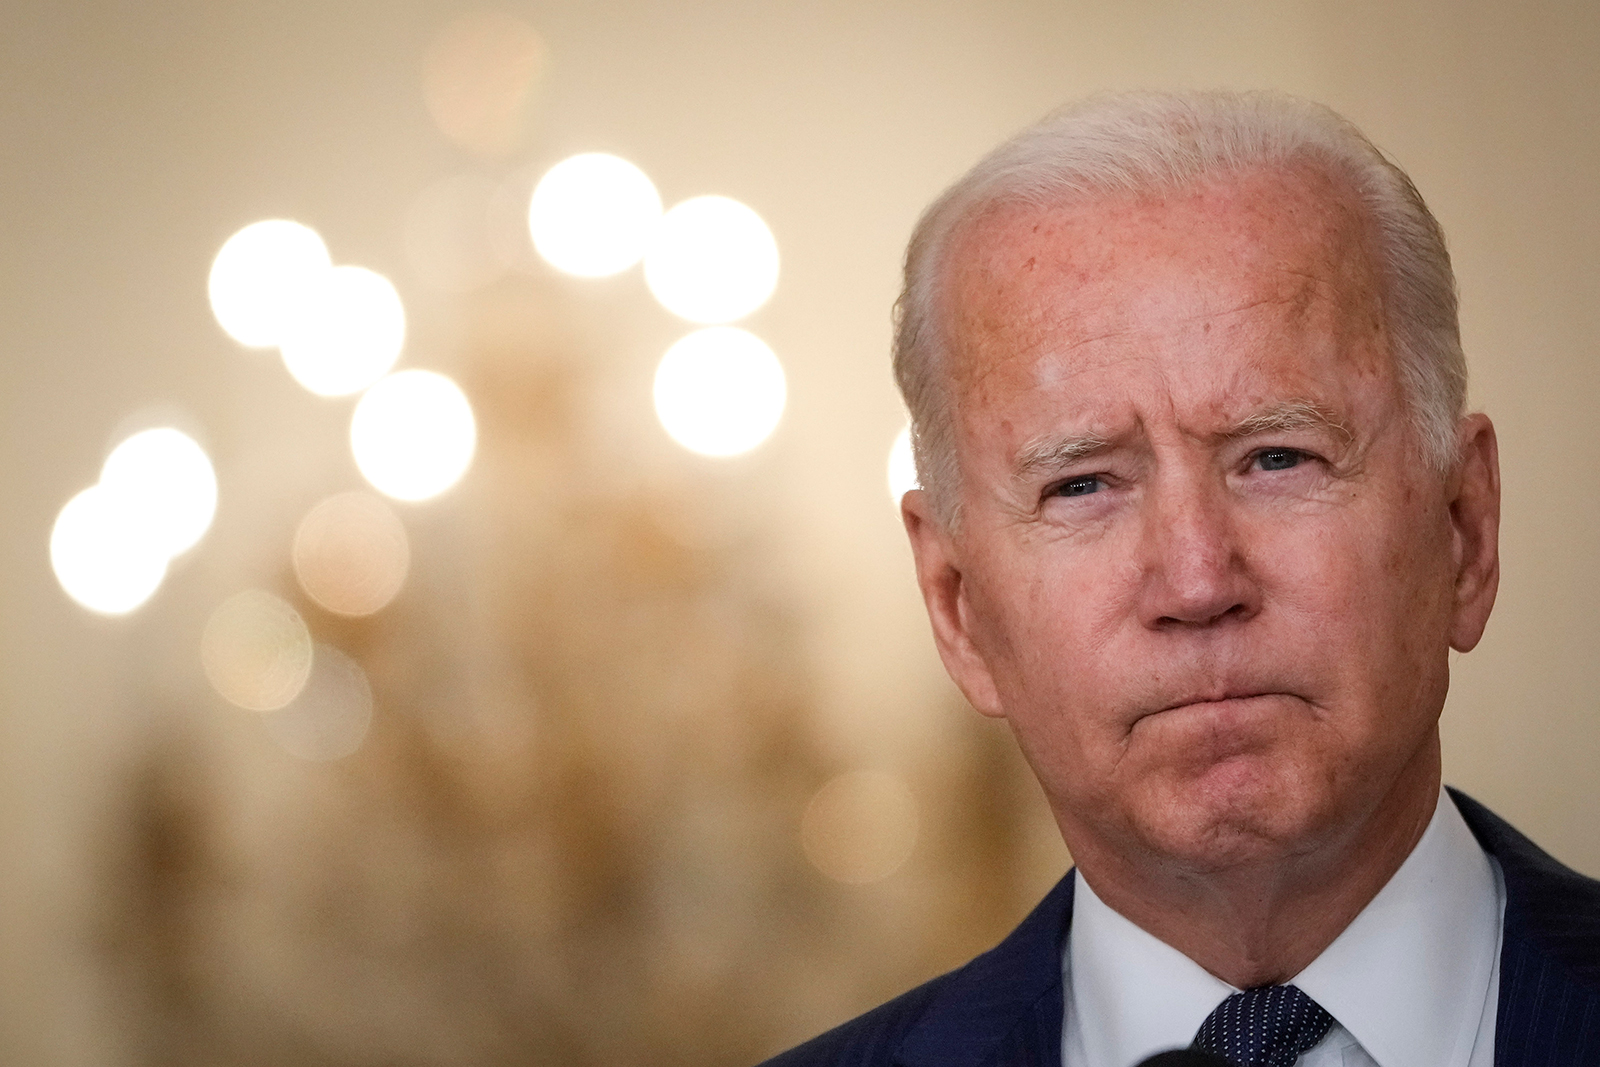 U.S. President Joe Biden speaks about the situation in Afghanistan in the East Room of the White House on August 26 in Washington, DC.